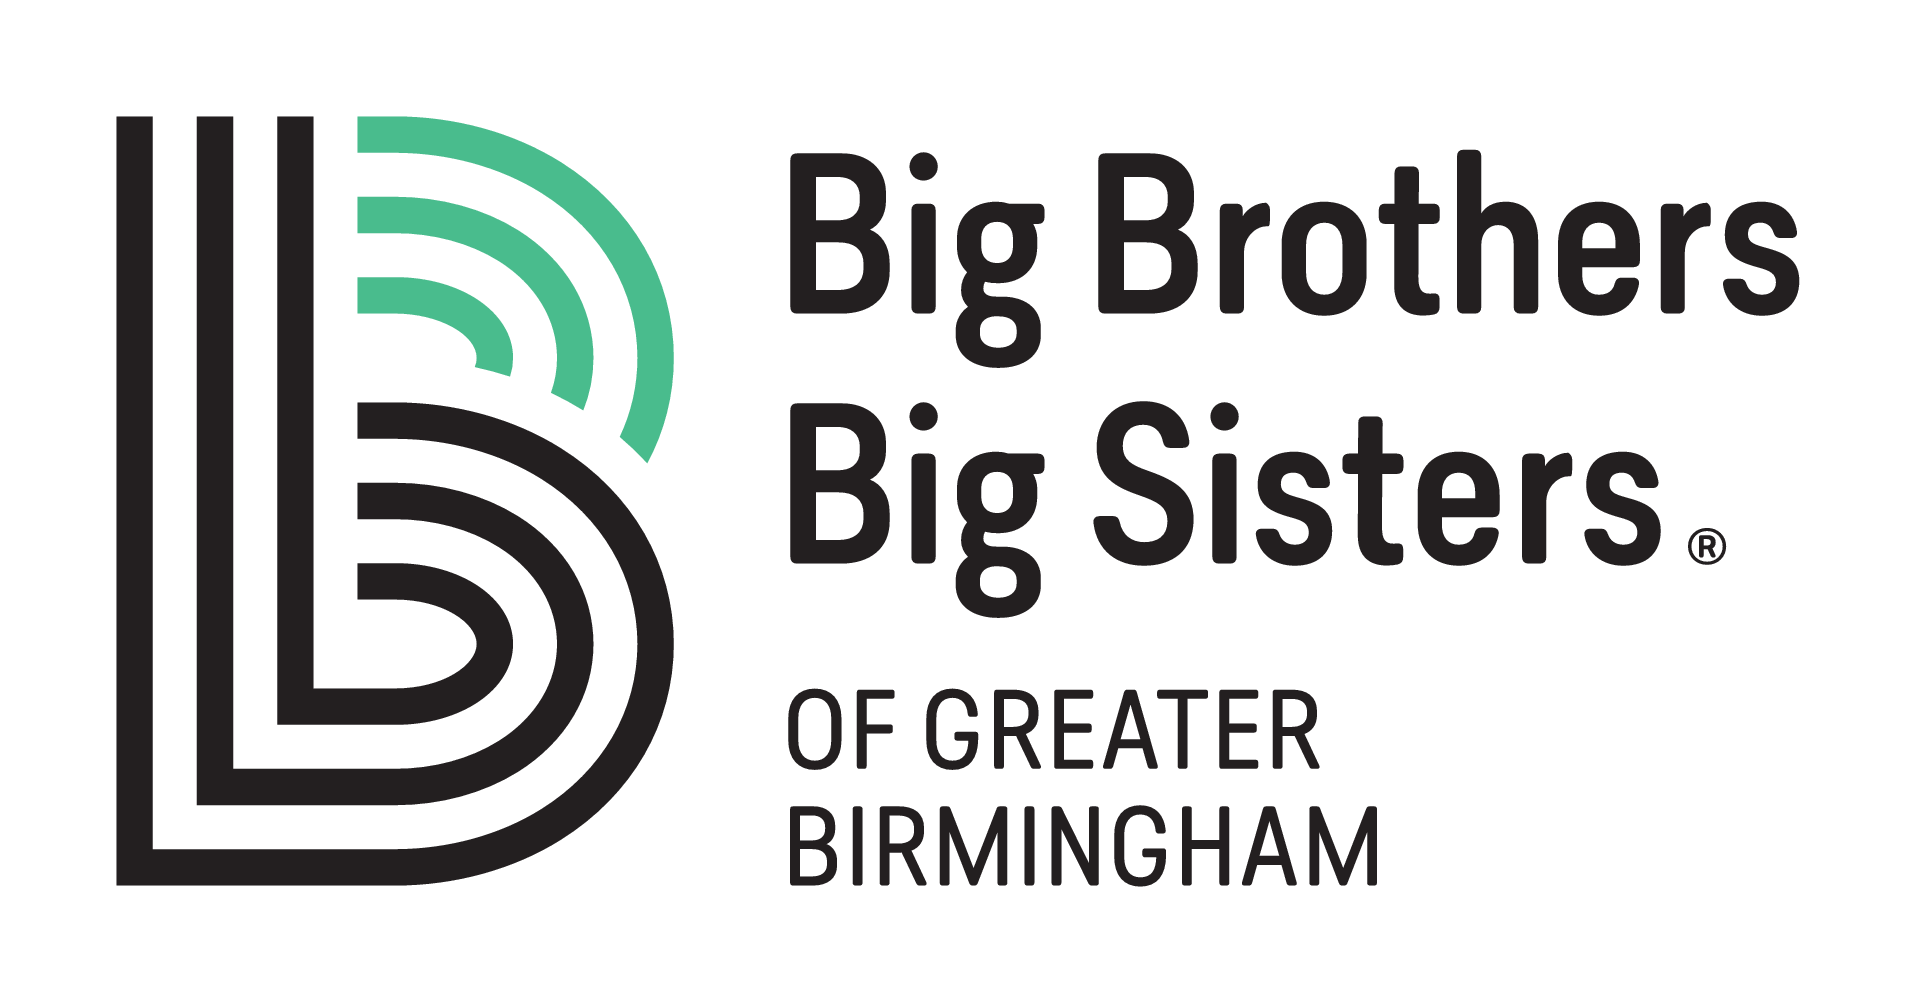 BBBS BHAM new brand CMYK_Primary_02-1916x1002.png